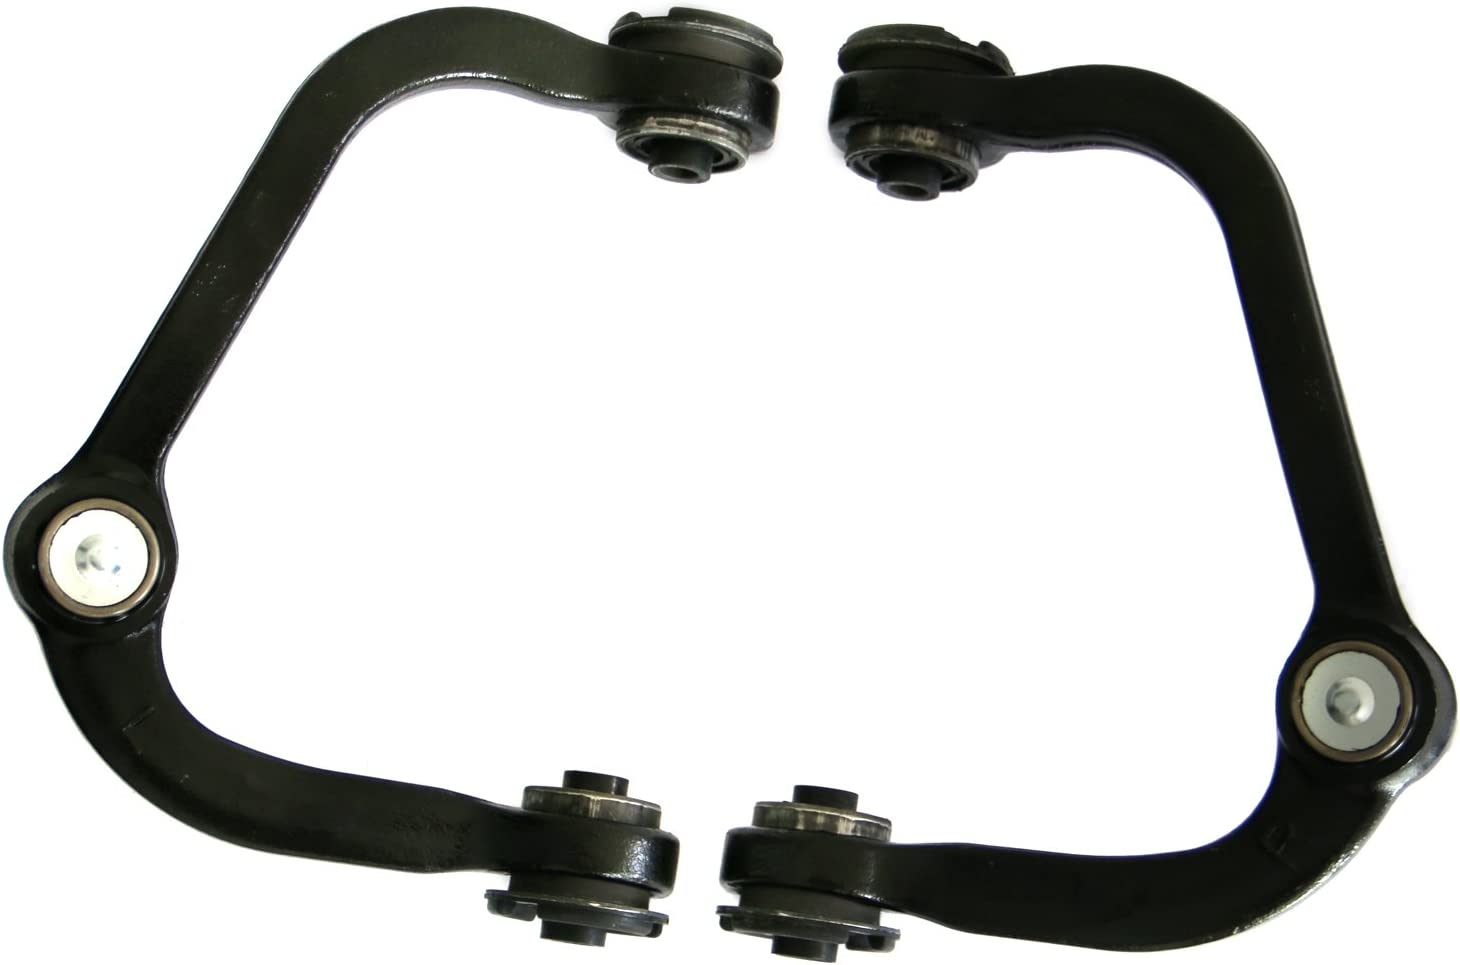 MOTORMAN 2 pc Front Upper Control Arm and Ball Joint Assembly Set for 2007-2014 Ford Expedition 2004-2014 Ford F-150 2006-2008 Lincoln Mark LT 2007-2014 Lincoln Navigator